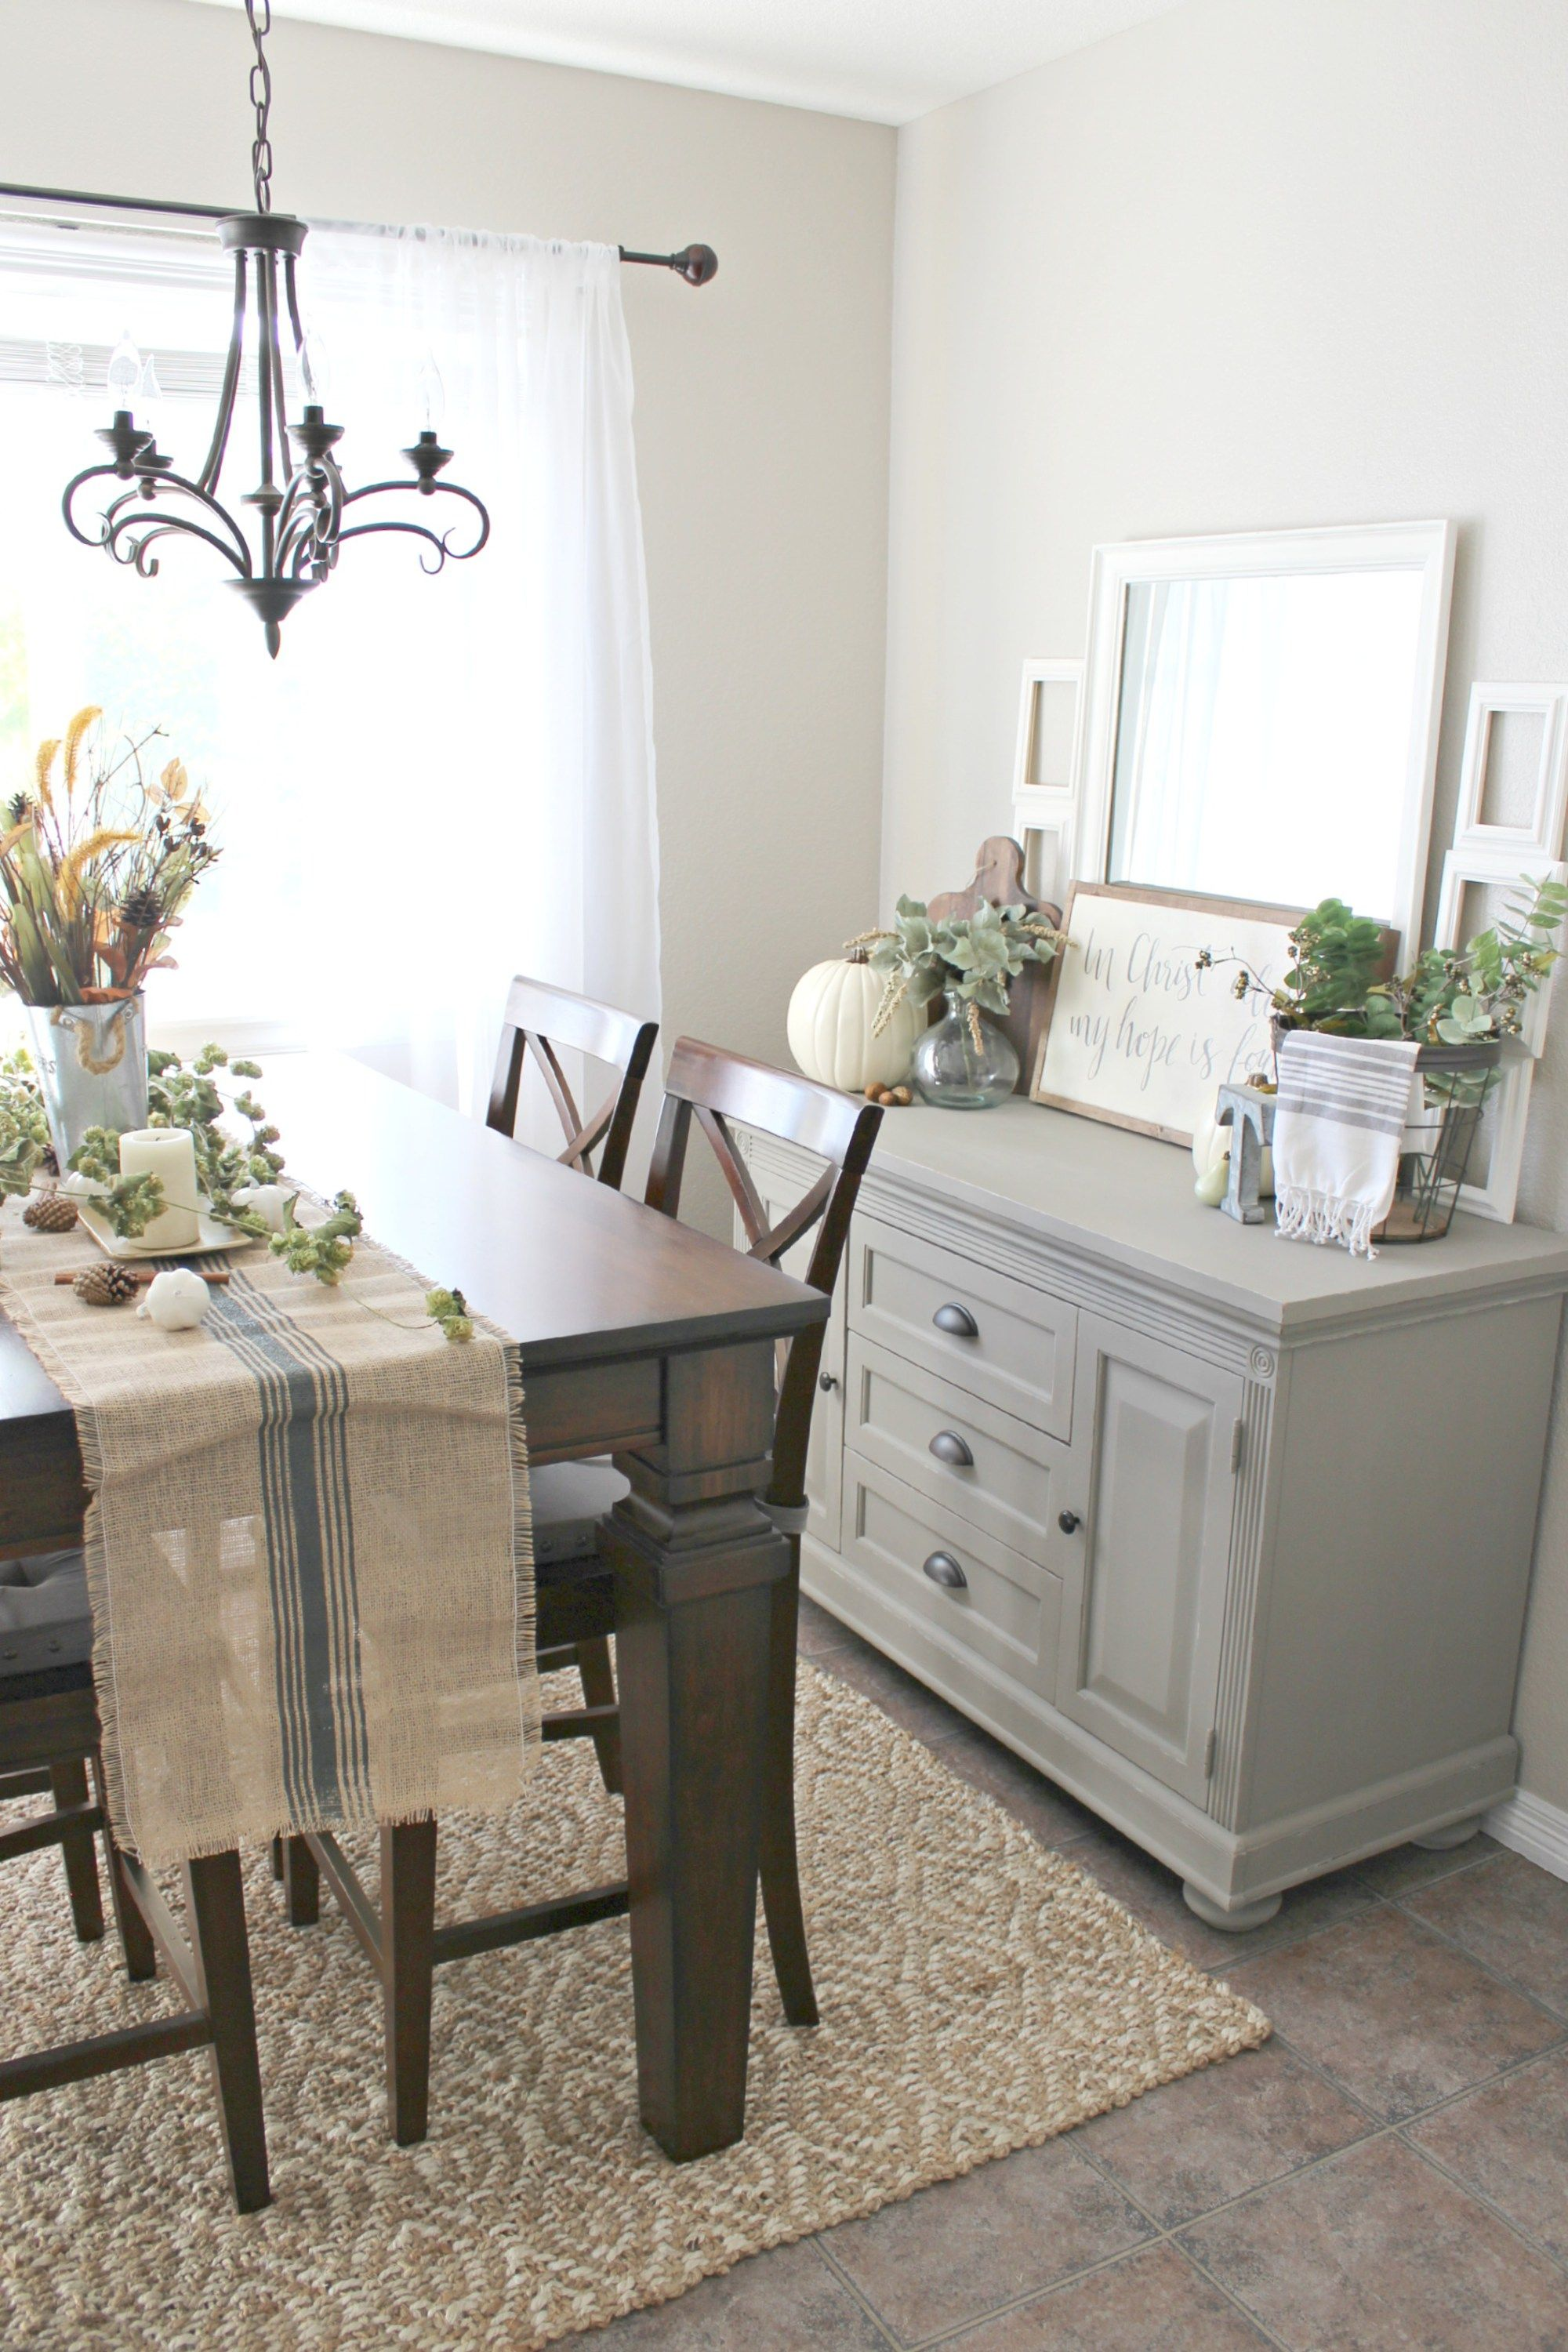 How To Decorate A Buffet Table In Dining Room - House Designer Today •